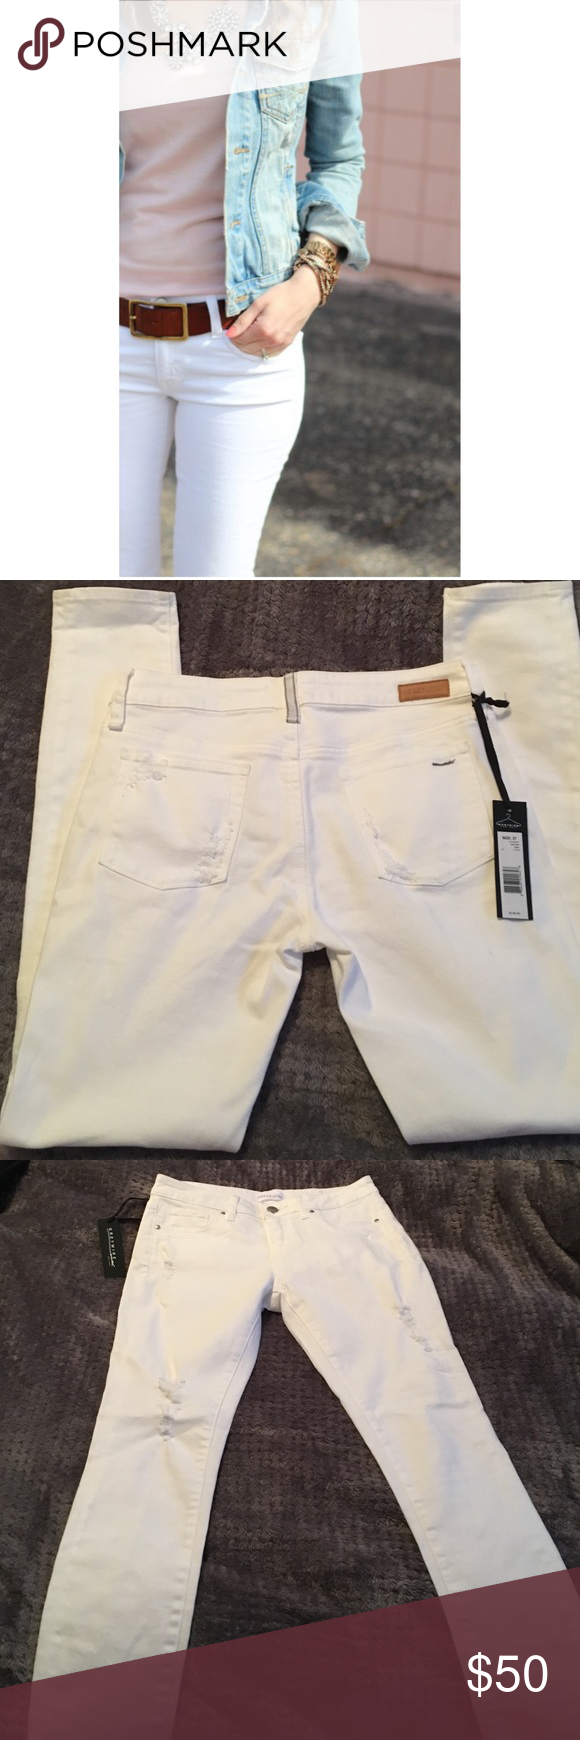 "BNWT White skinny jeans Adorable white skinny jeans with distressing throughout. BNWT! Measurements laying flat: waist :15"", rise:9"", inseam:30"" material 98% cotton, 2% spandex. These are great quality jeans nice and thick with a lot of stretch. Very flattering style and just in time for summer! Exclusive denim created by designers Michael Press and Elie Tahari, so these are amazingly gorgeous high quality jeans! Greywire Jeans Skinny"